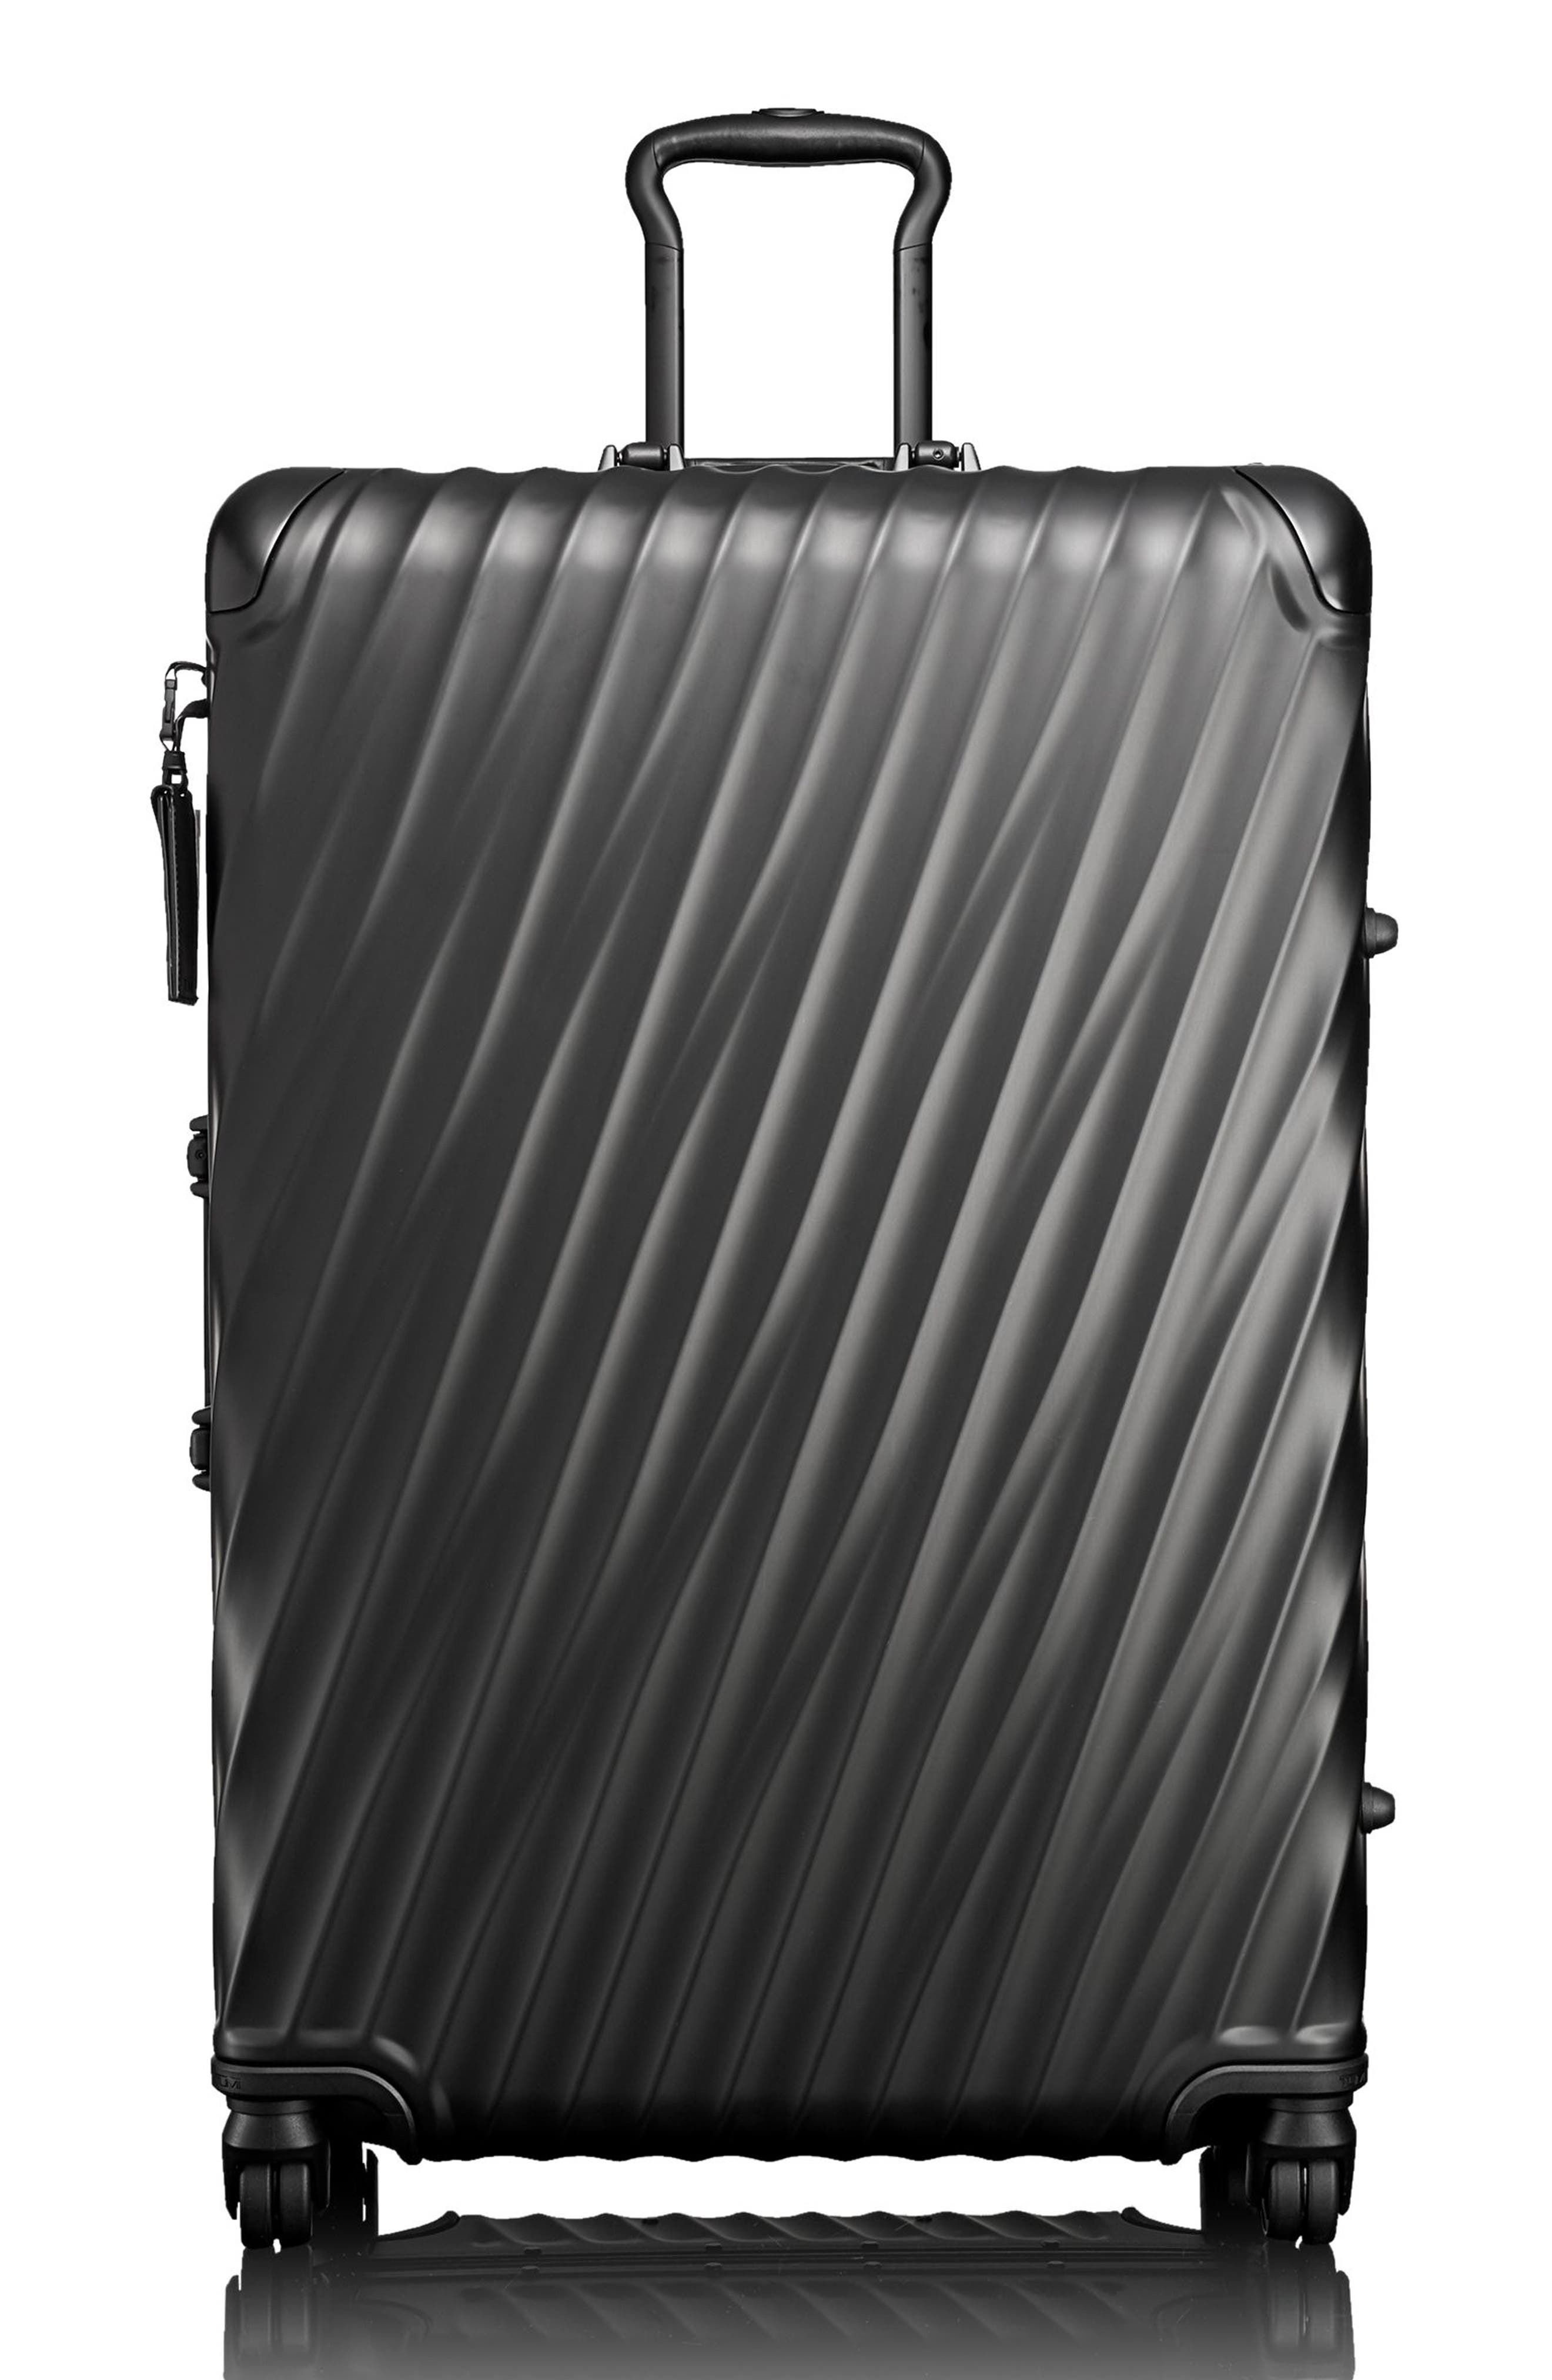 19 Degree 31-Inch Extended Trip Wheeled Aluminum Packing Case,                         Main,                         color, MATTE BLACK